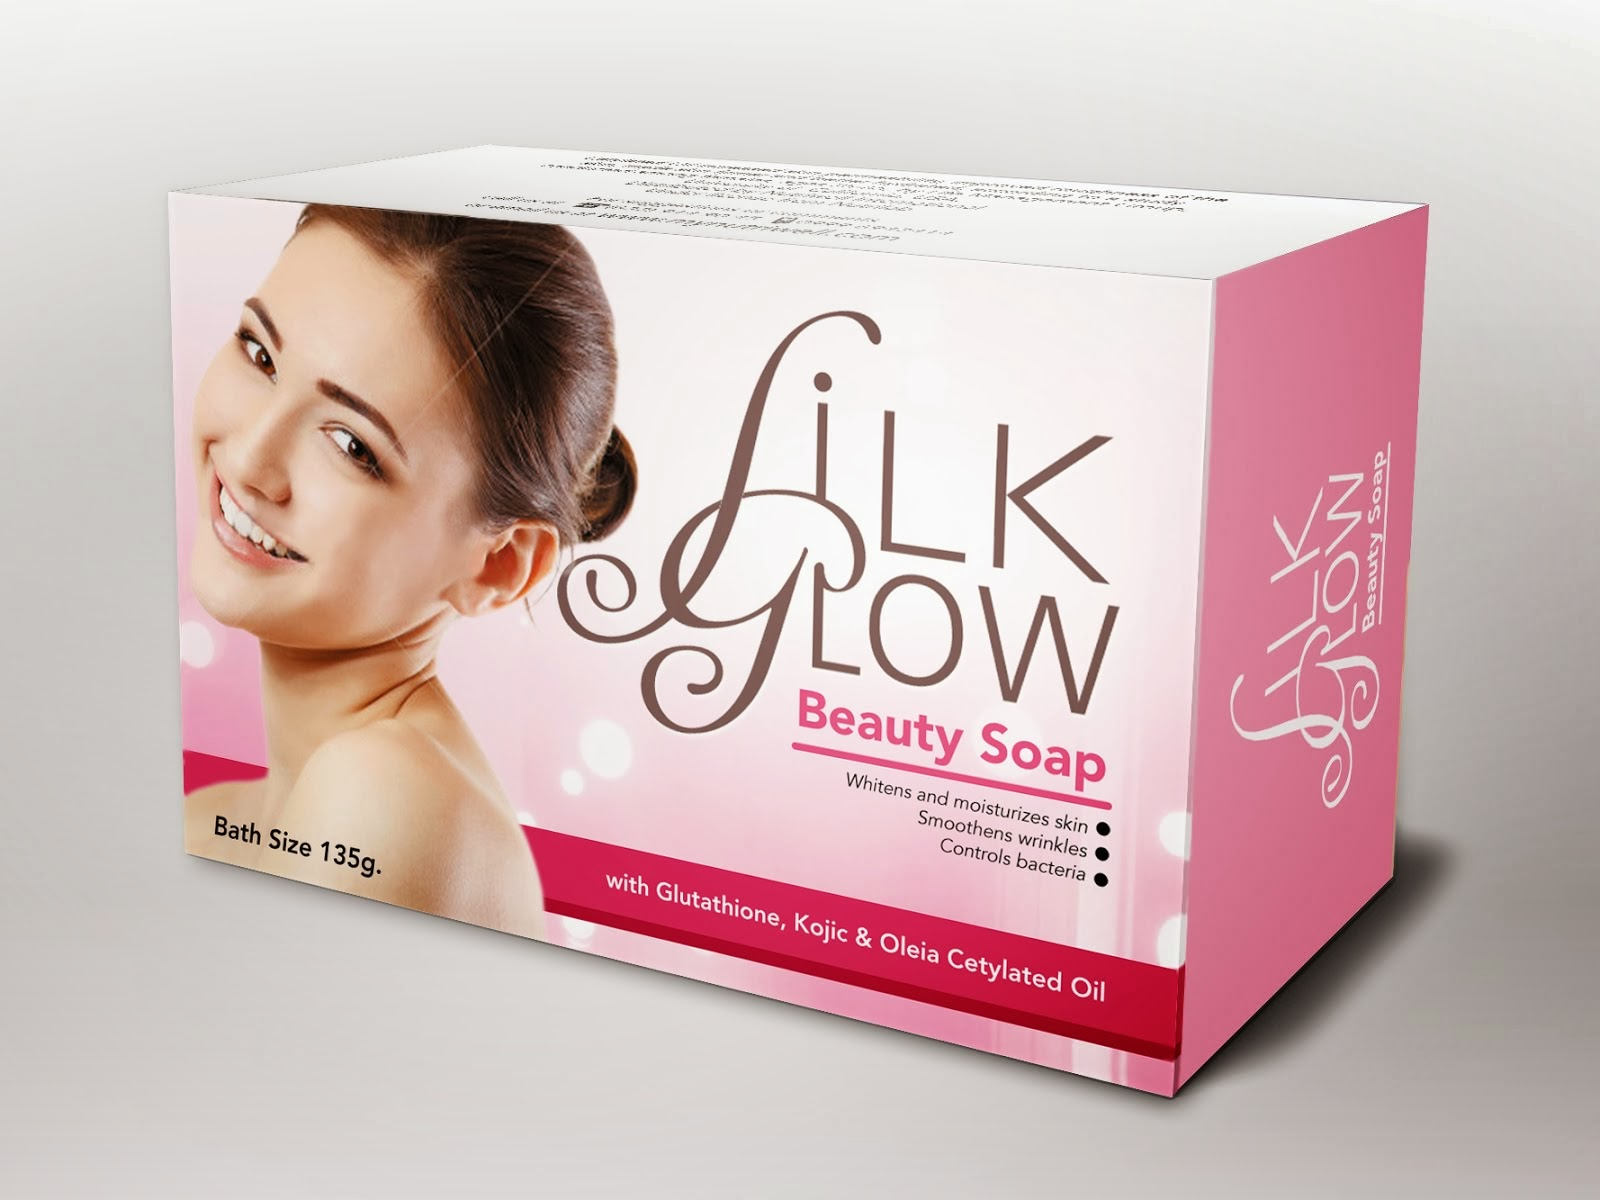 Silk Glow Beauty Soap